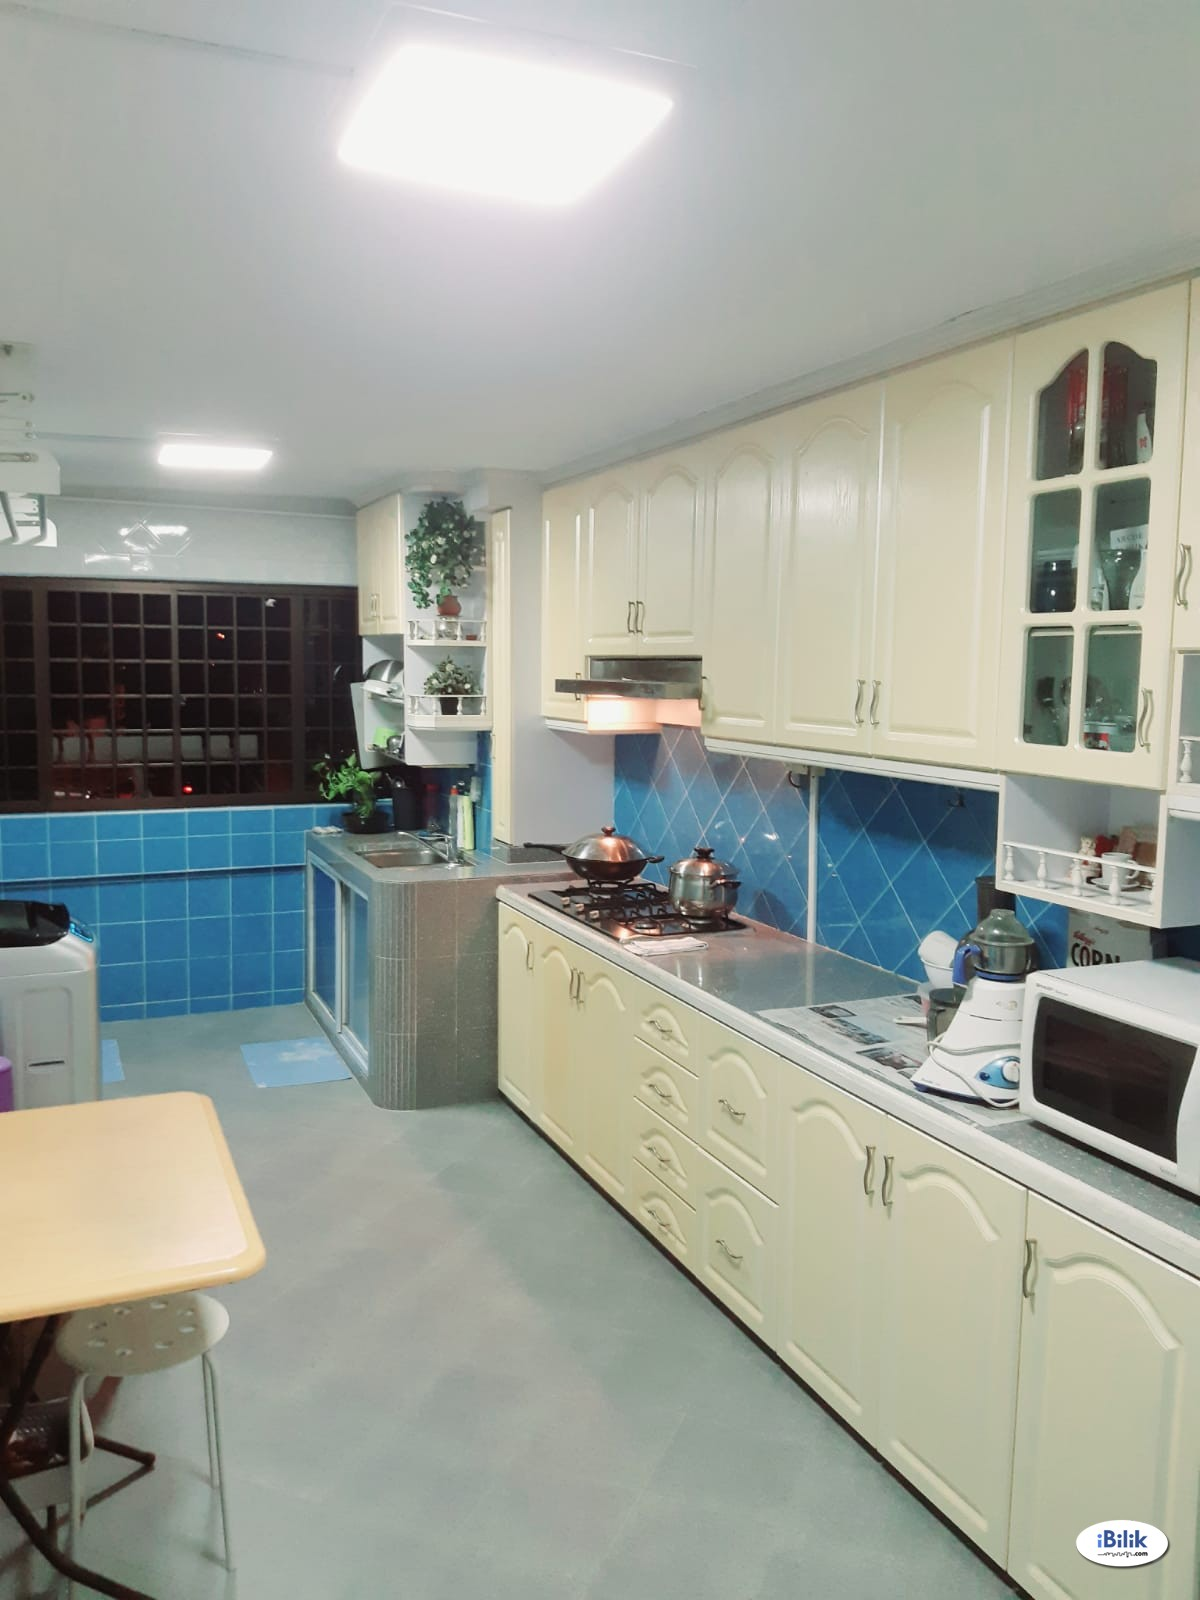 Master room at 405 hougang avenue 10 for rent! Aircon wifi!